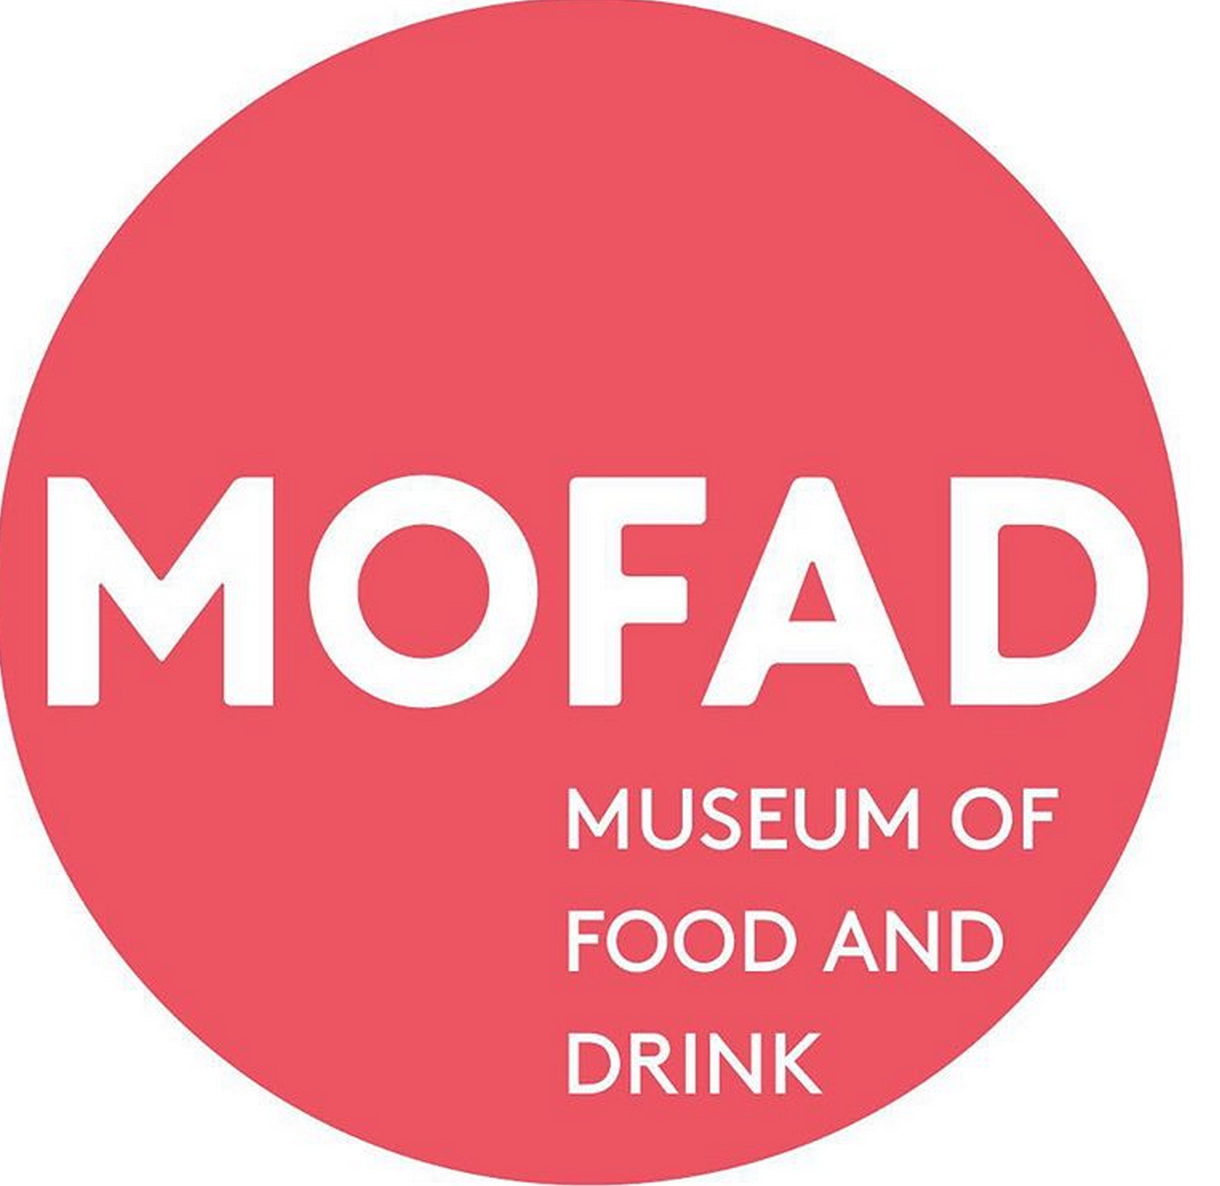 The Museum of Food and Drink in Brooklyn offers a variety of exhibits, programs and events all catered to the education, history, commerce and love of food and drink.